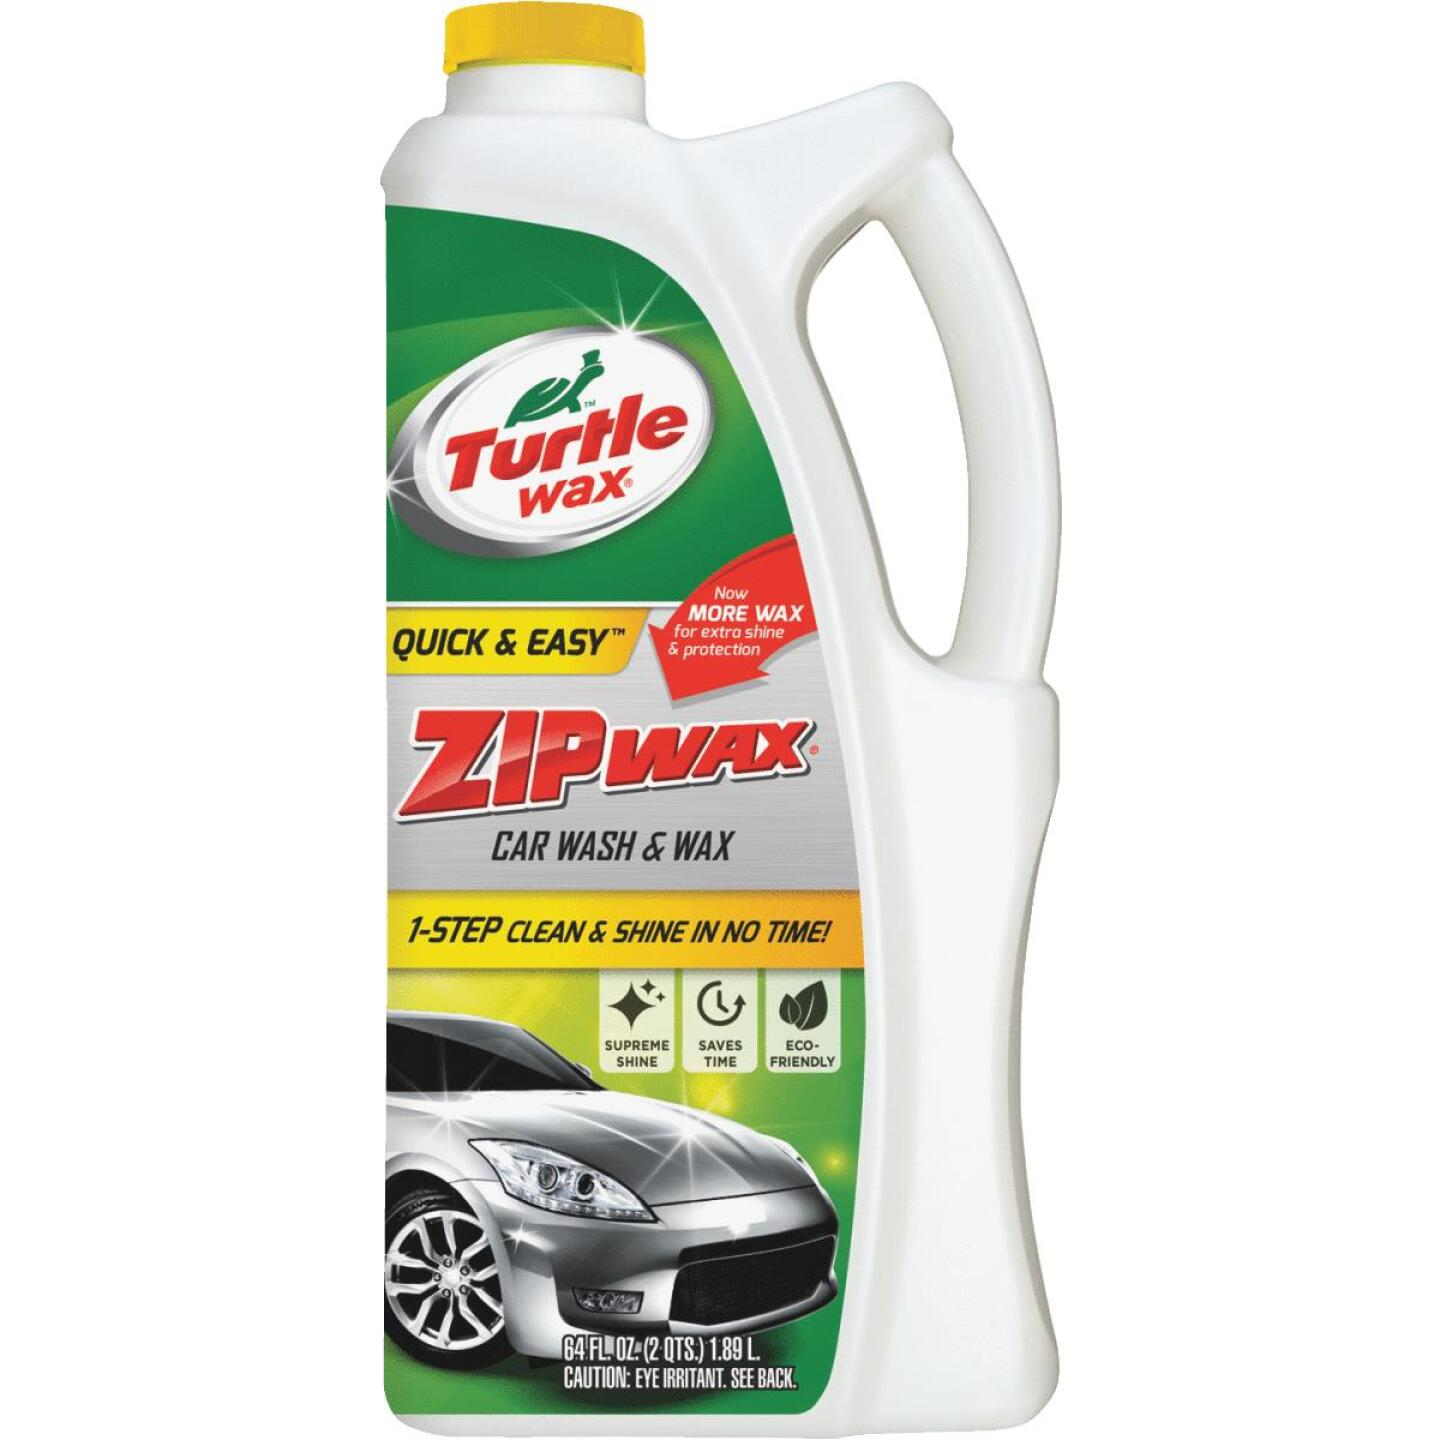 Turtle Wax Zip Wax Liquid 64 oz Car Wash Image 1